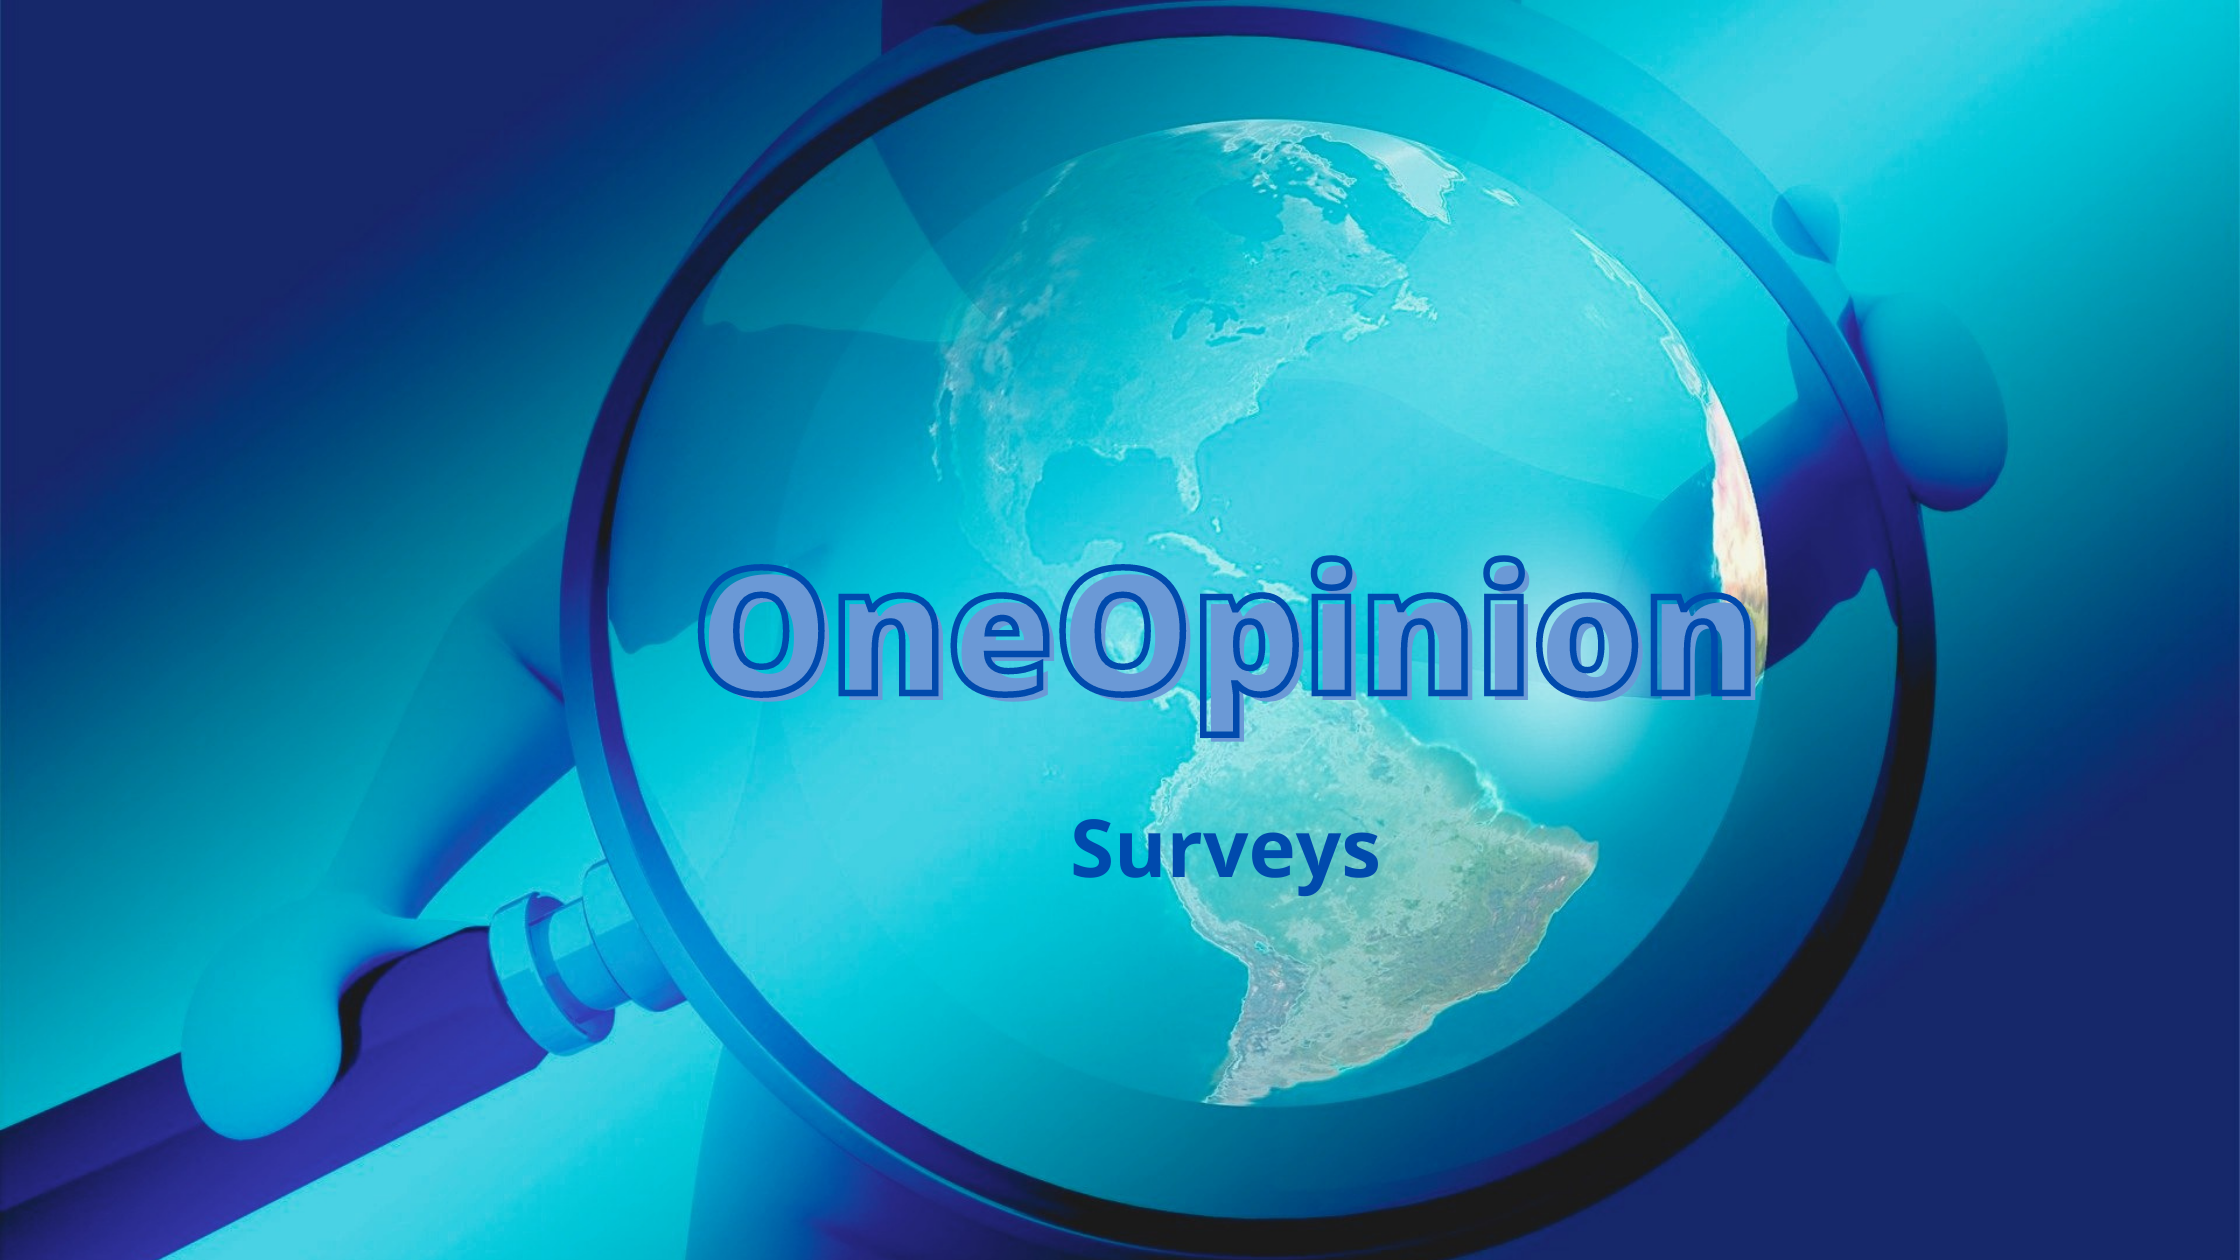 is oneopinion a scam